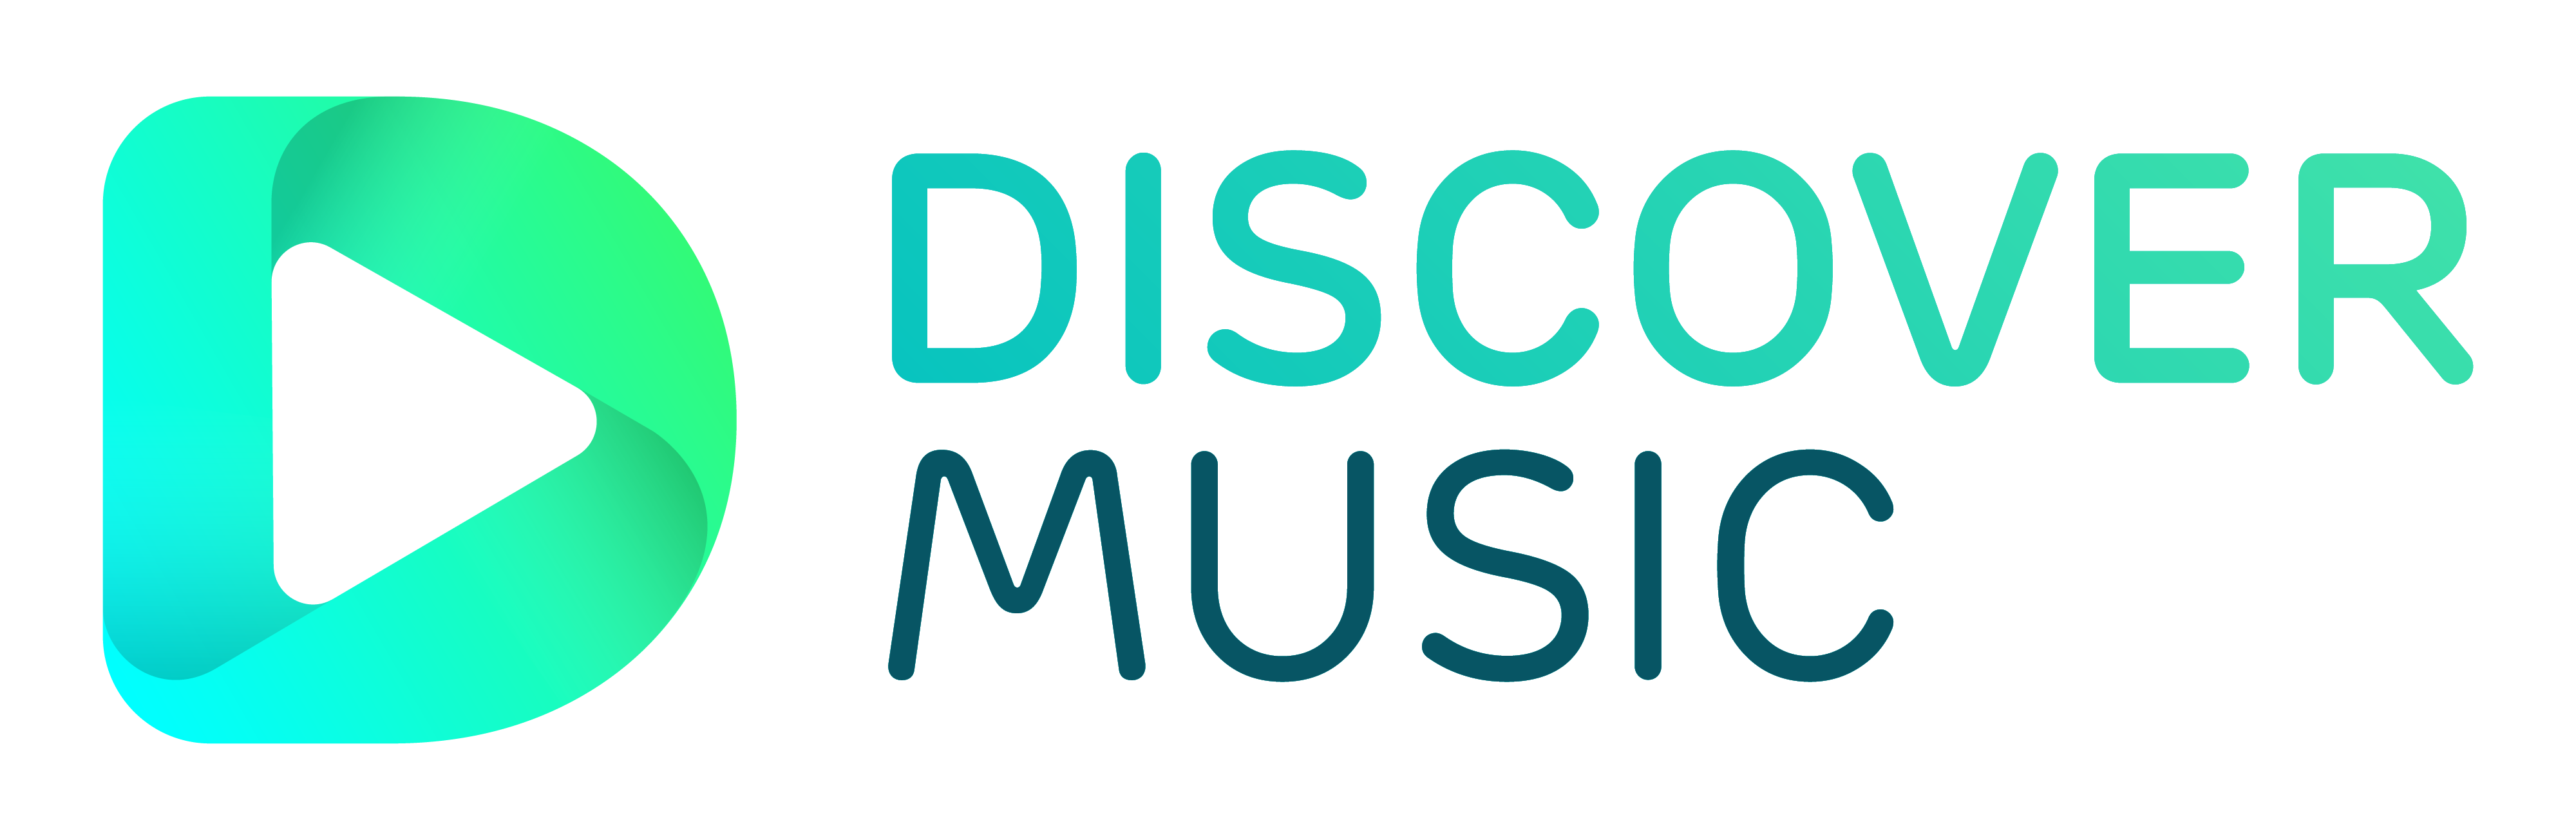 Discover Music - Encourage your guests to interact with your branded music playlists